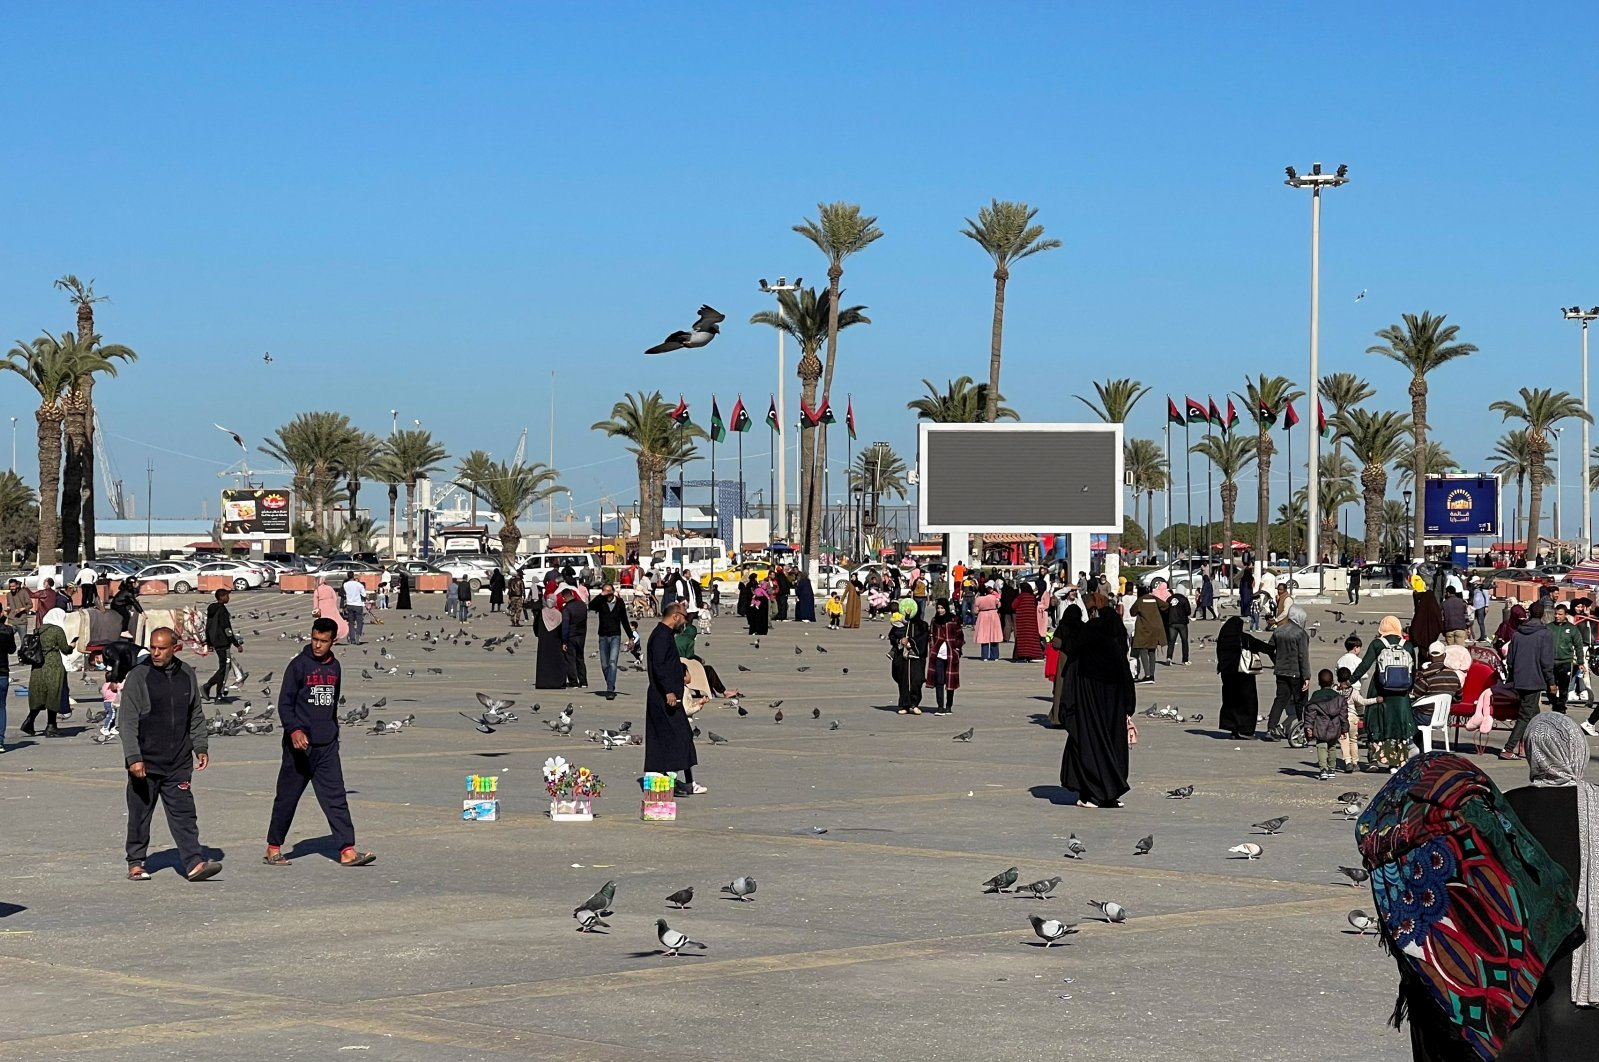 People walk at Martyrs' Square in the early hours of Friday afternoon in Tripoli, Libya, February 5, 2021. (REUTERS Photo)